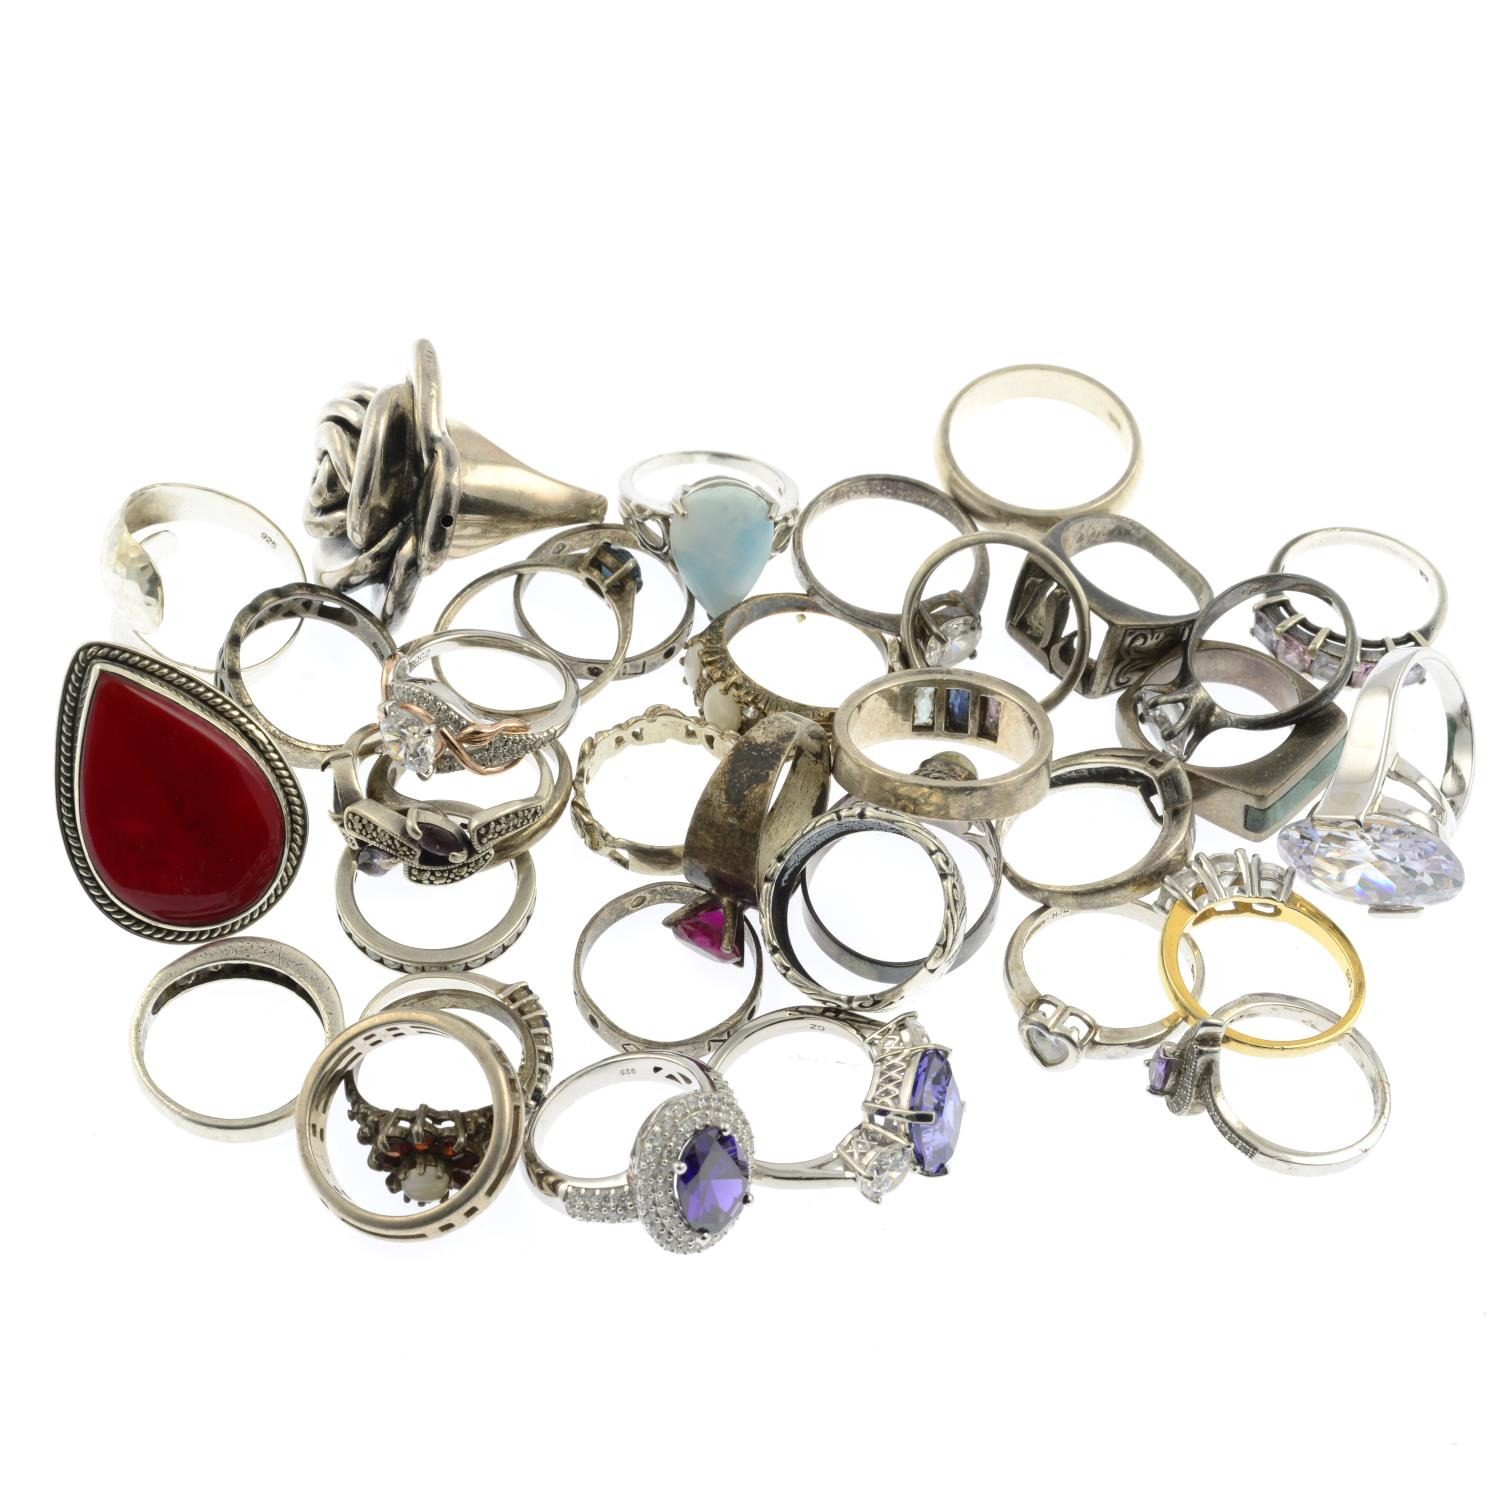 A selection of mainly gem-set rings, to include a three stone cubic zirconia ring. - Image 2 of 2